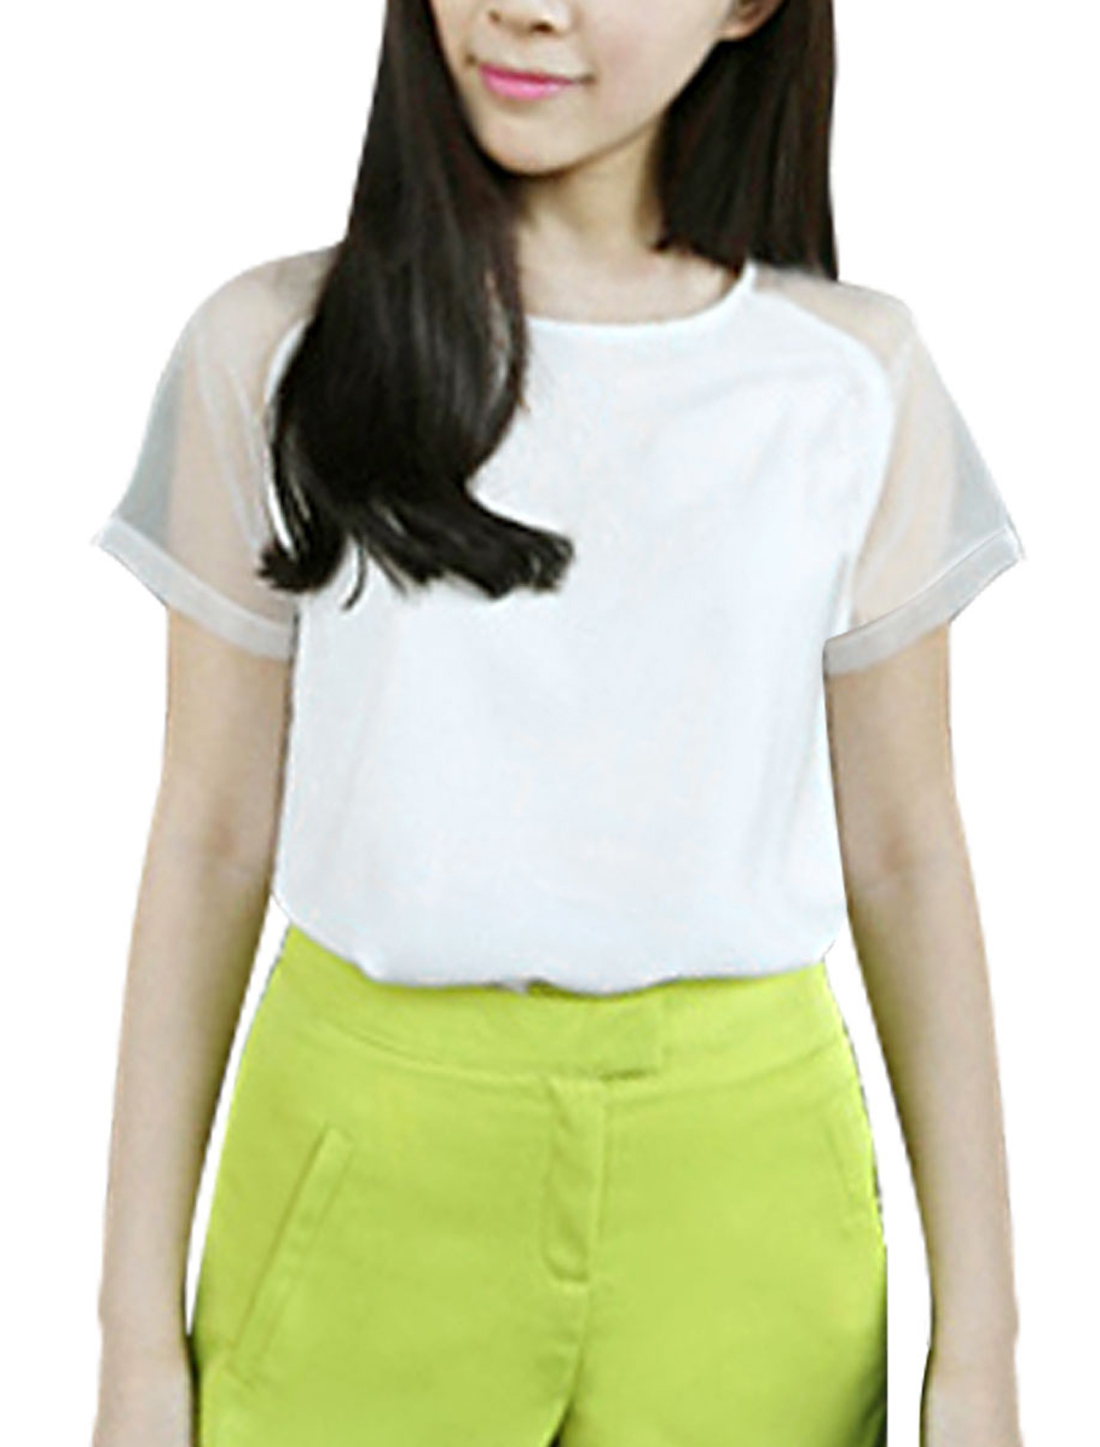 Lady Panel Mesh Short-sleeved Fashion Tops Blouses White XS